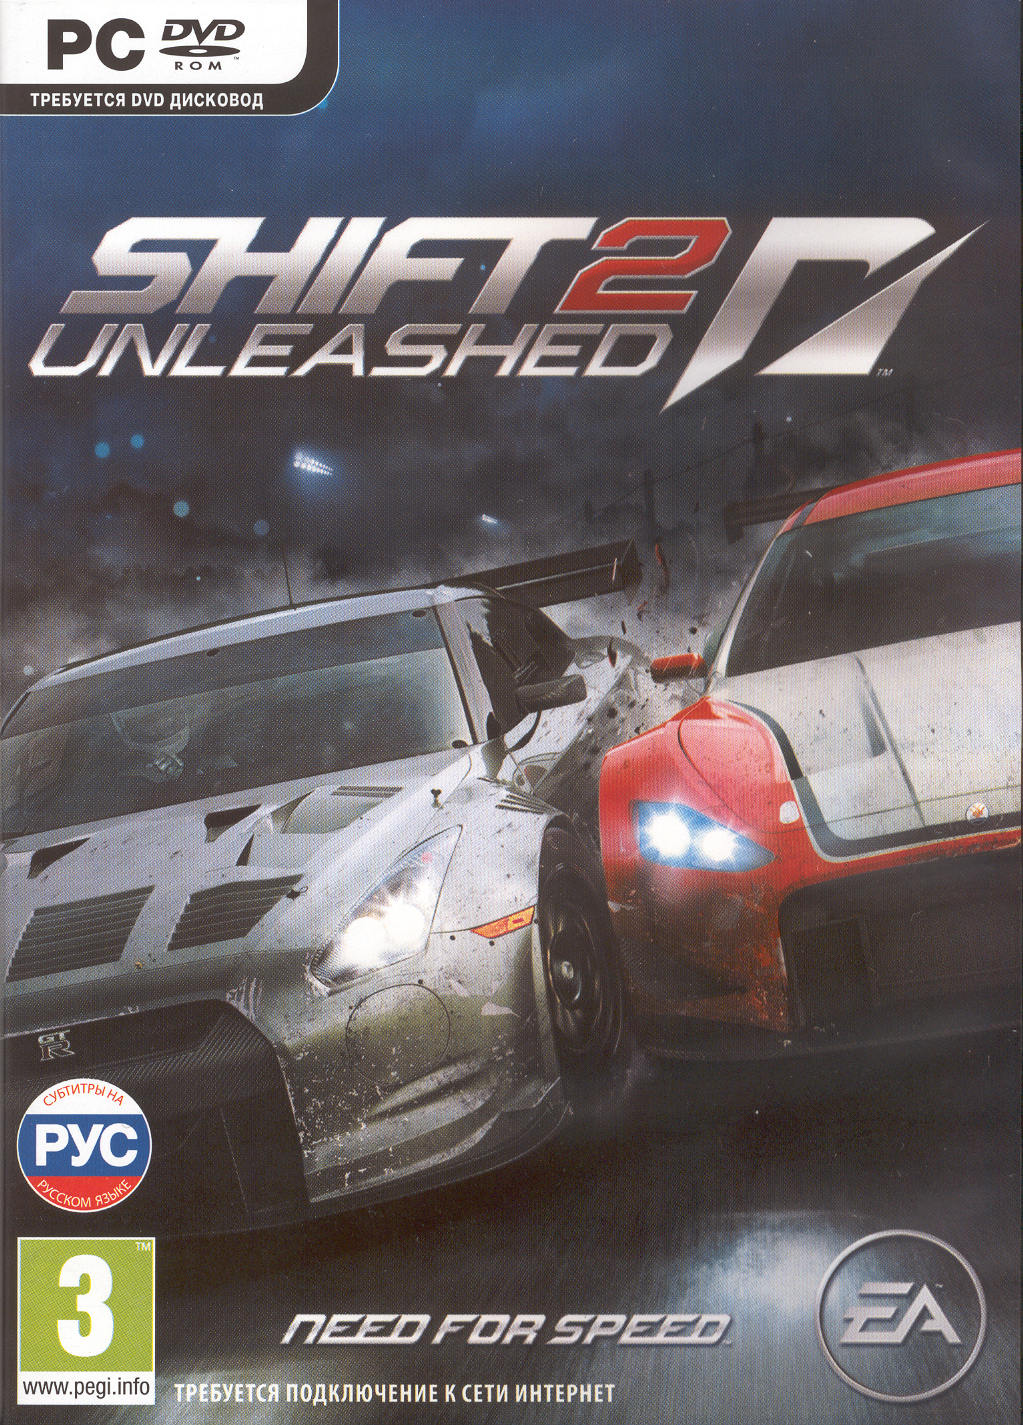 Need For Speed: Shift 2 Unleashed (Ключ от EA)